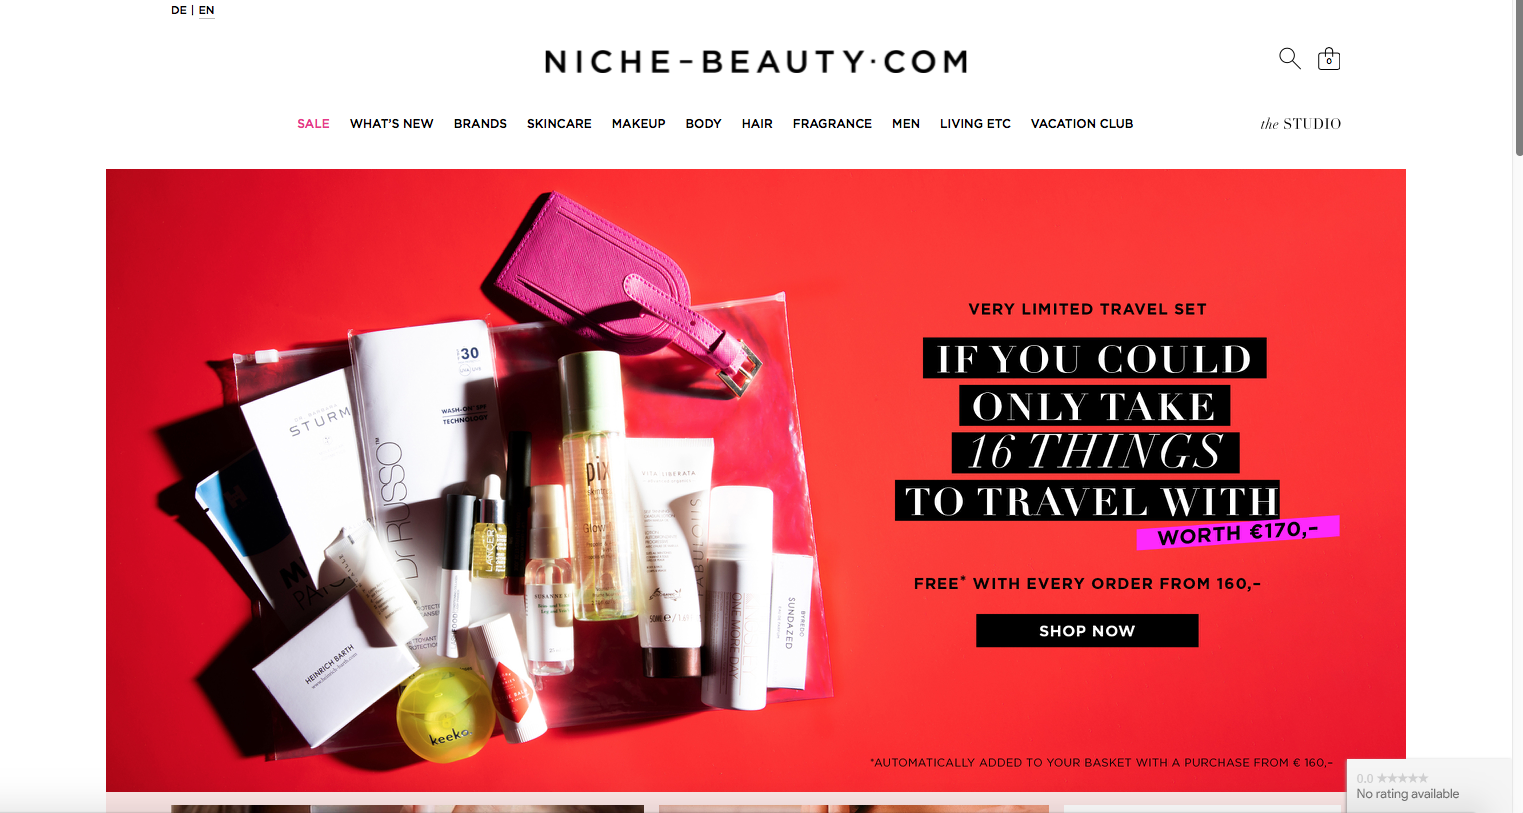 The site Niche Beauty